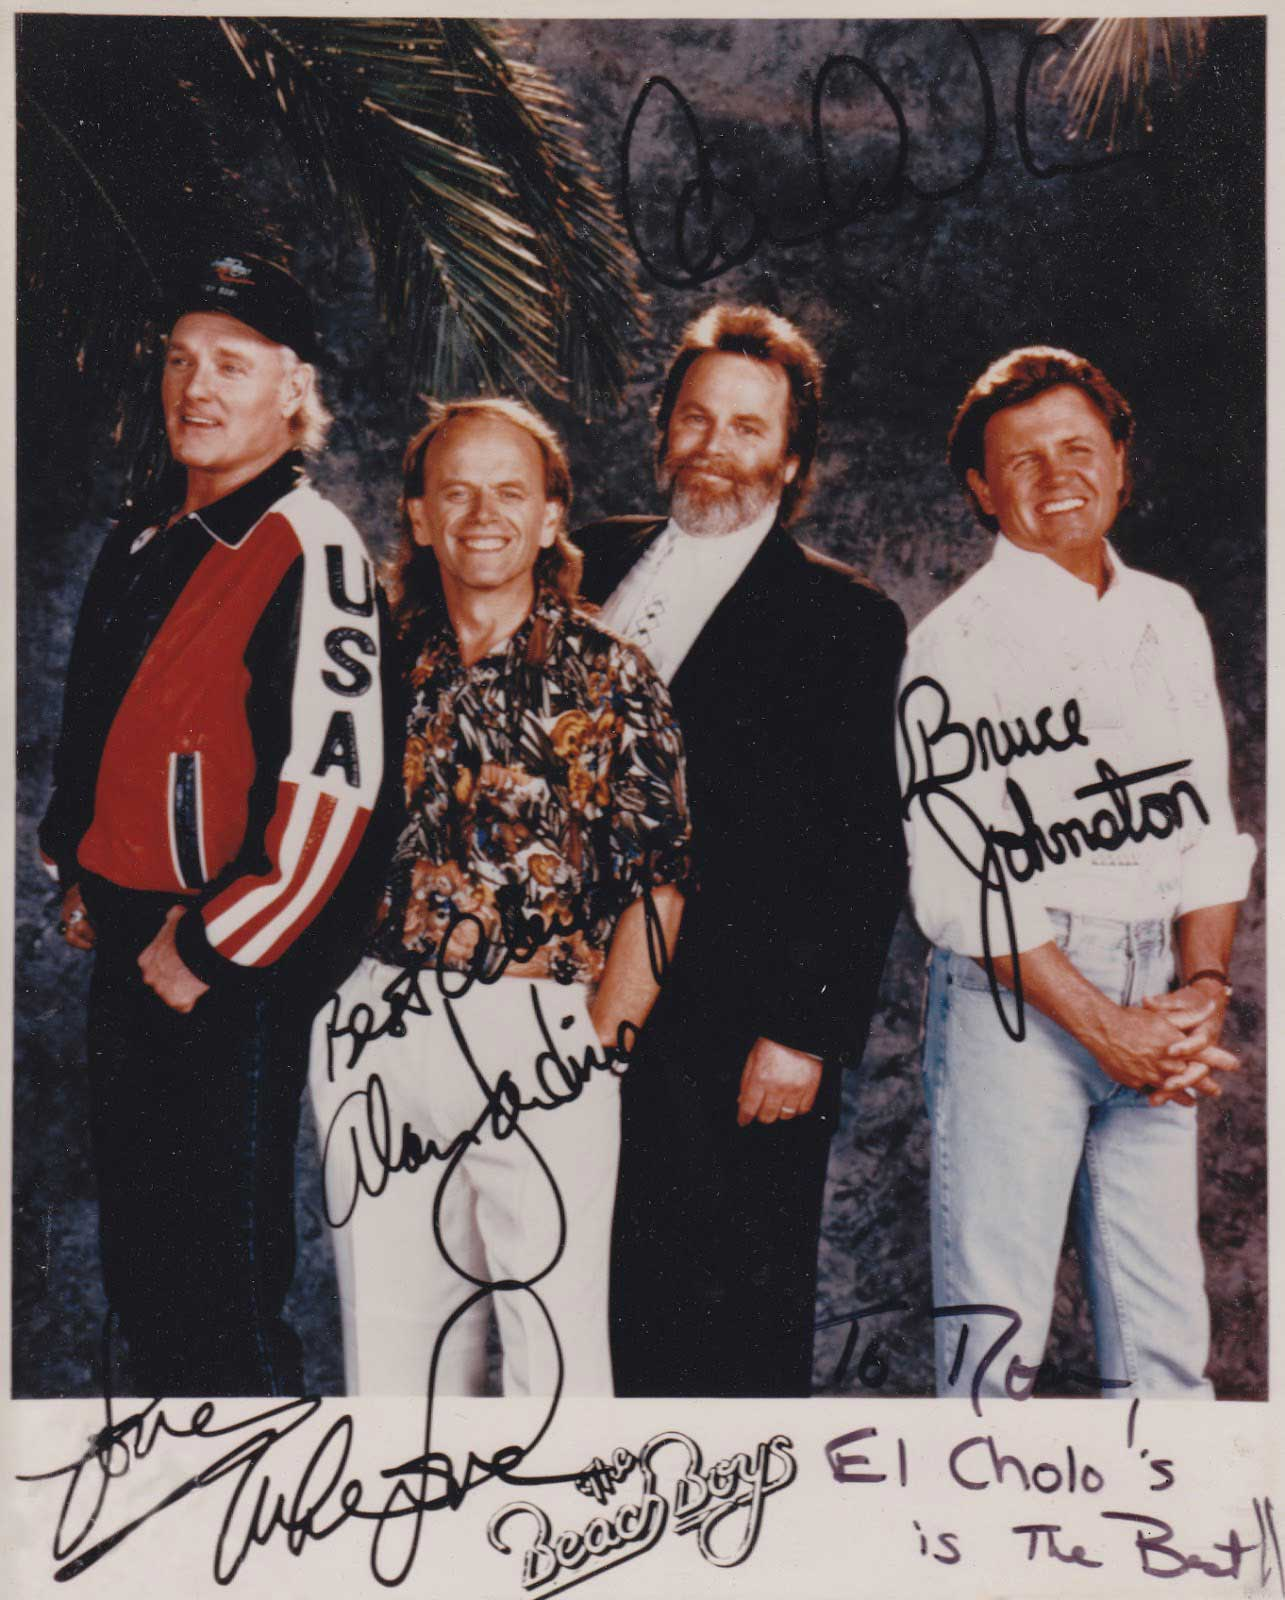 Mike Love (of Beach Boys fame)